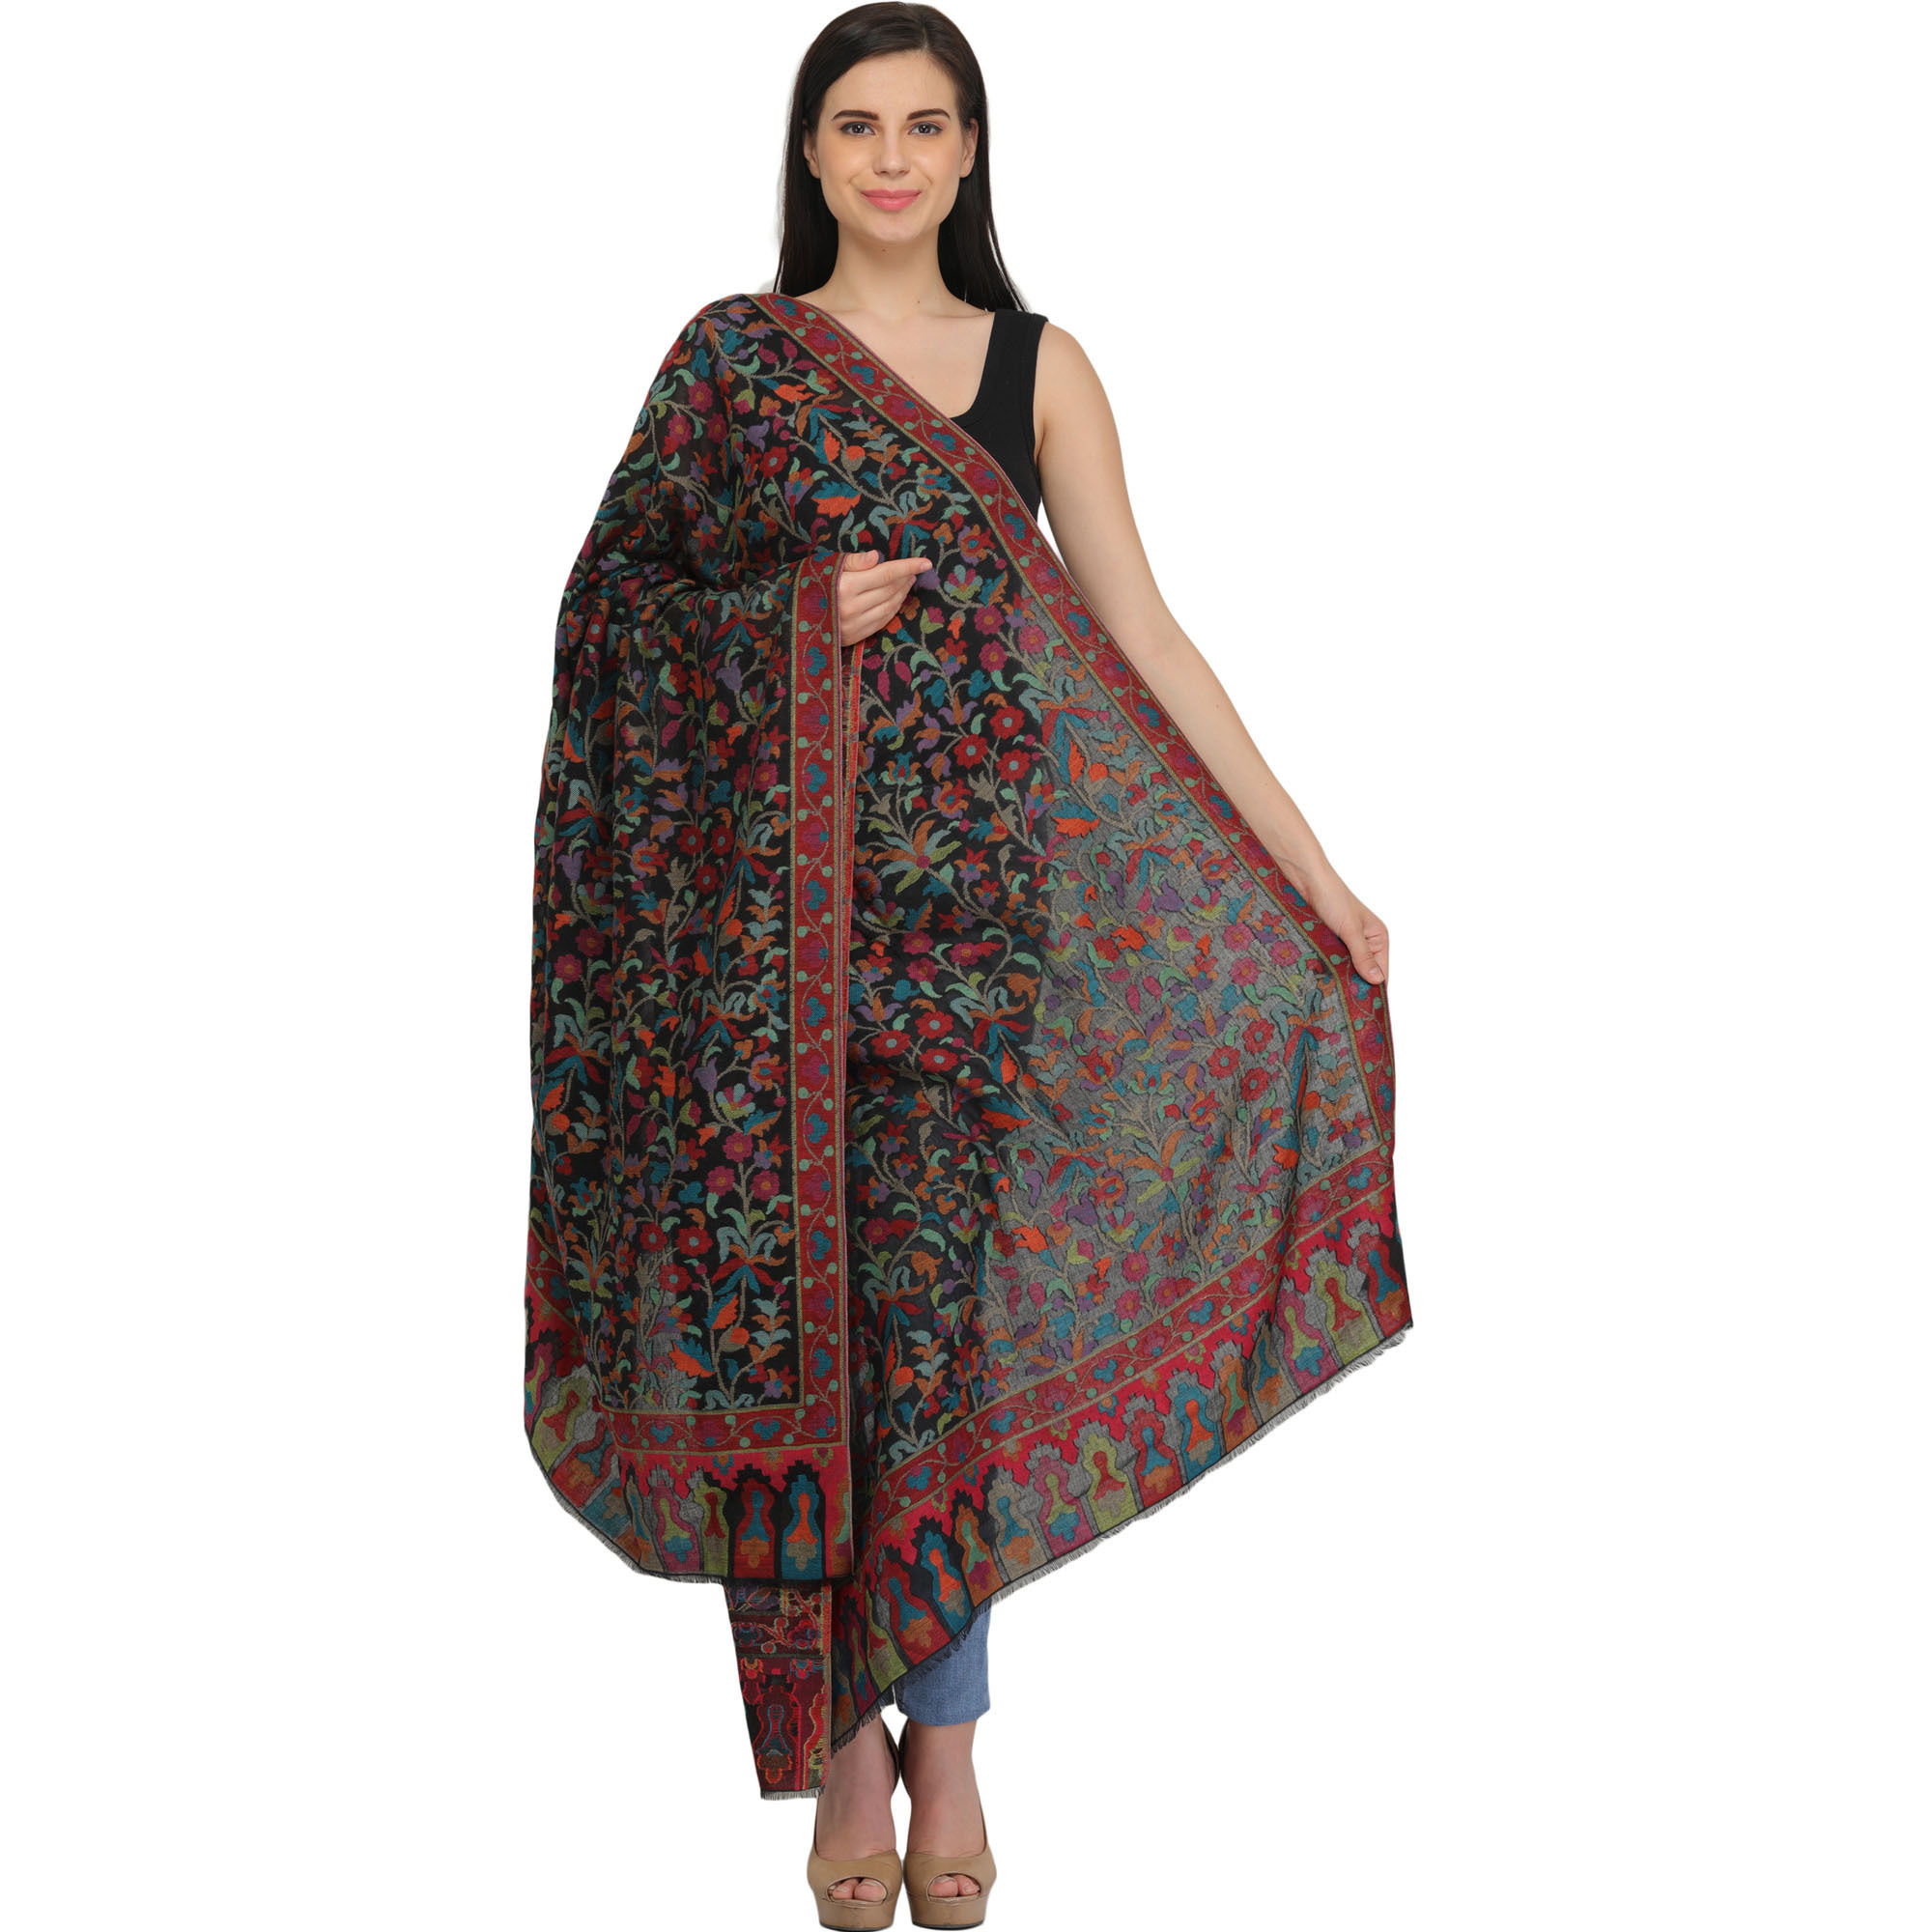 Kani Jamawar Shawl with Floral Weave in Multicolor Thread